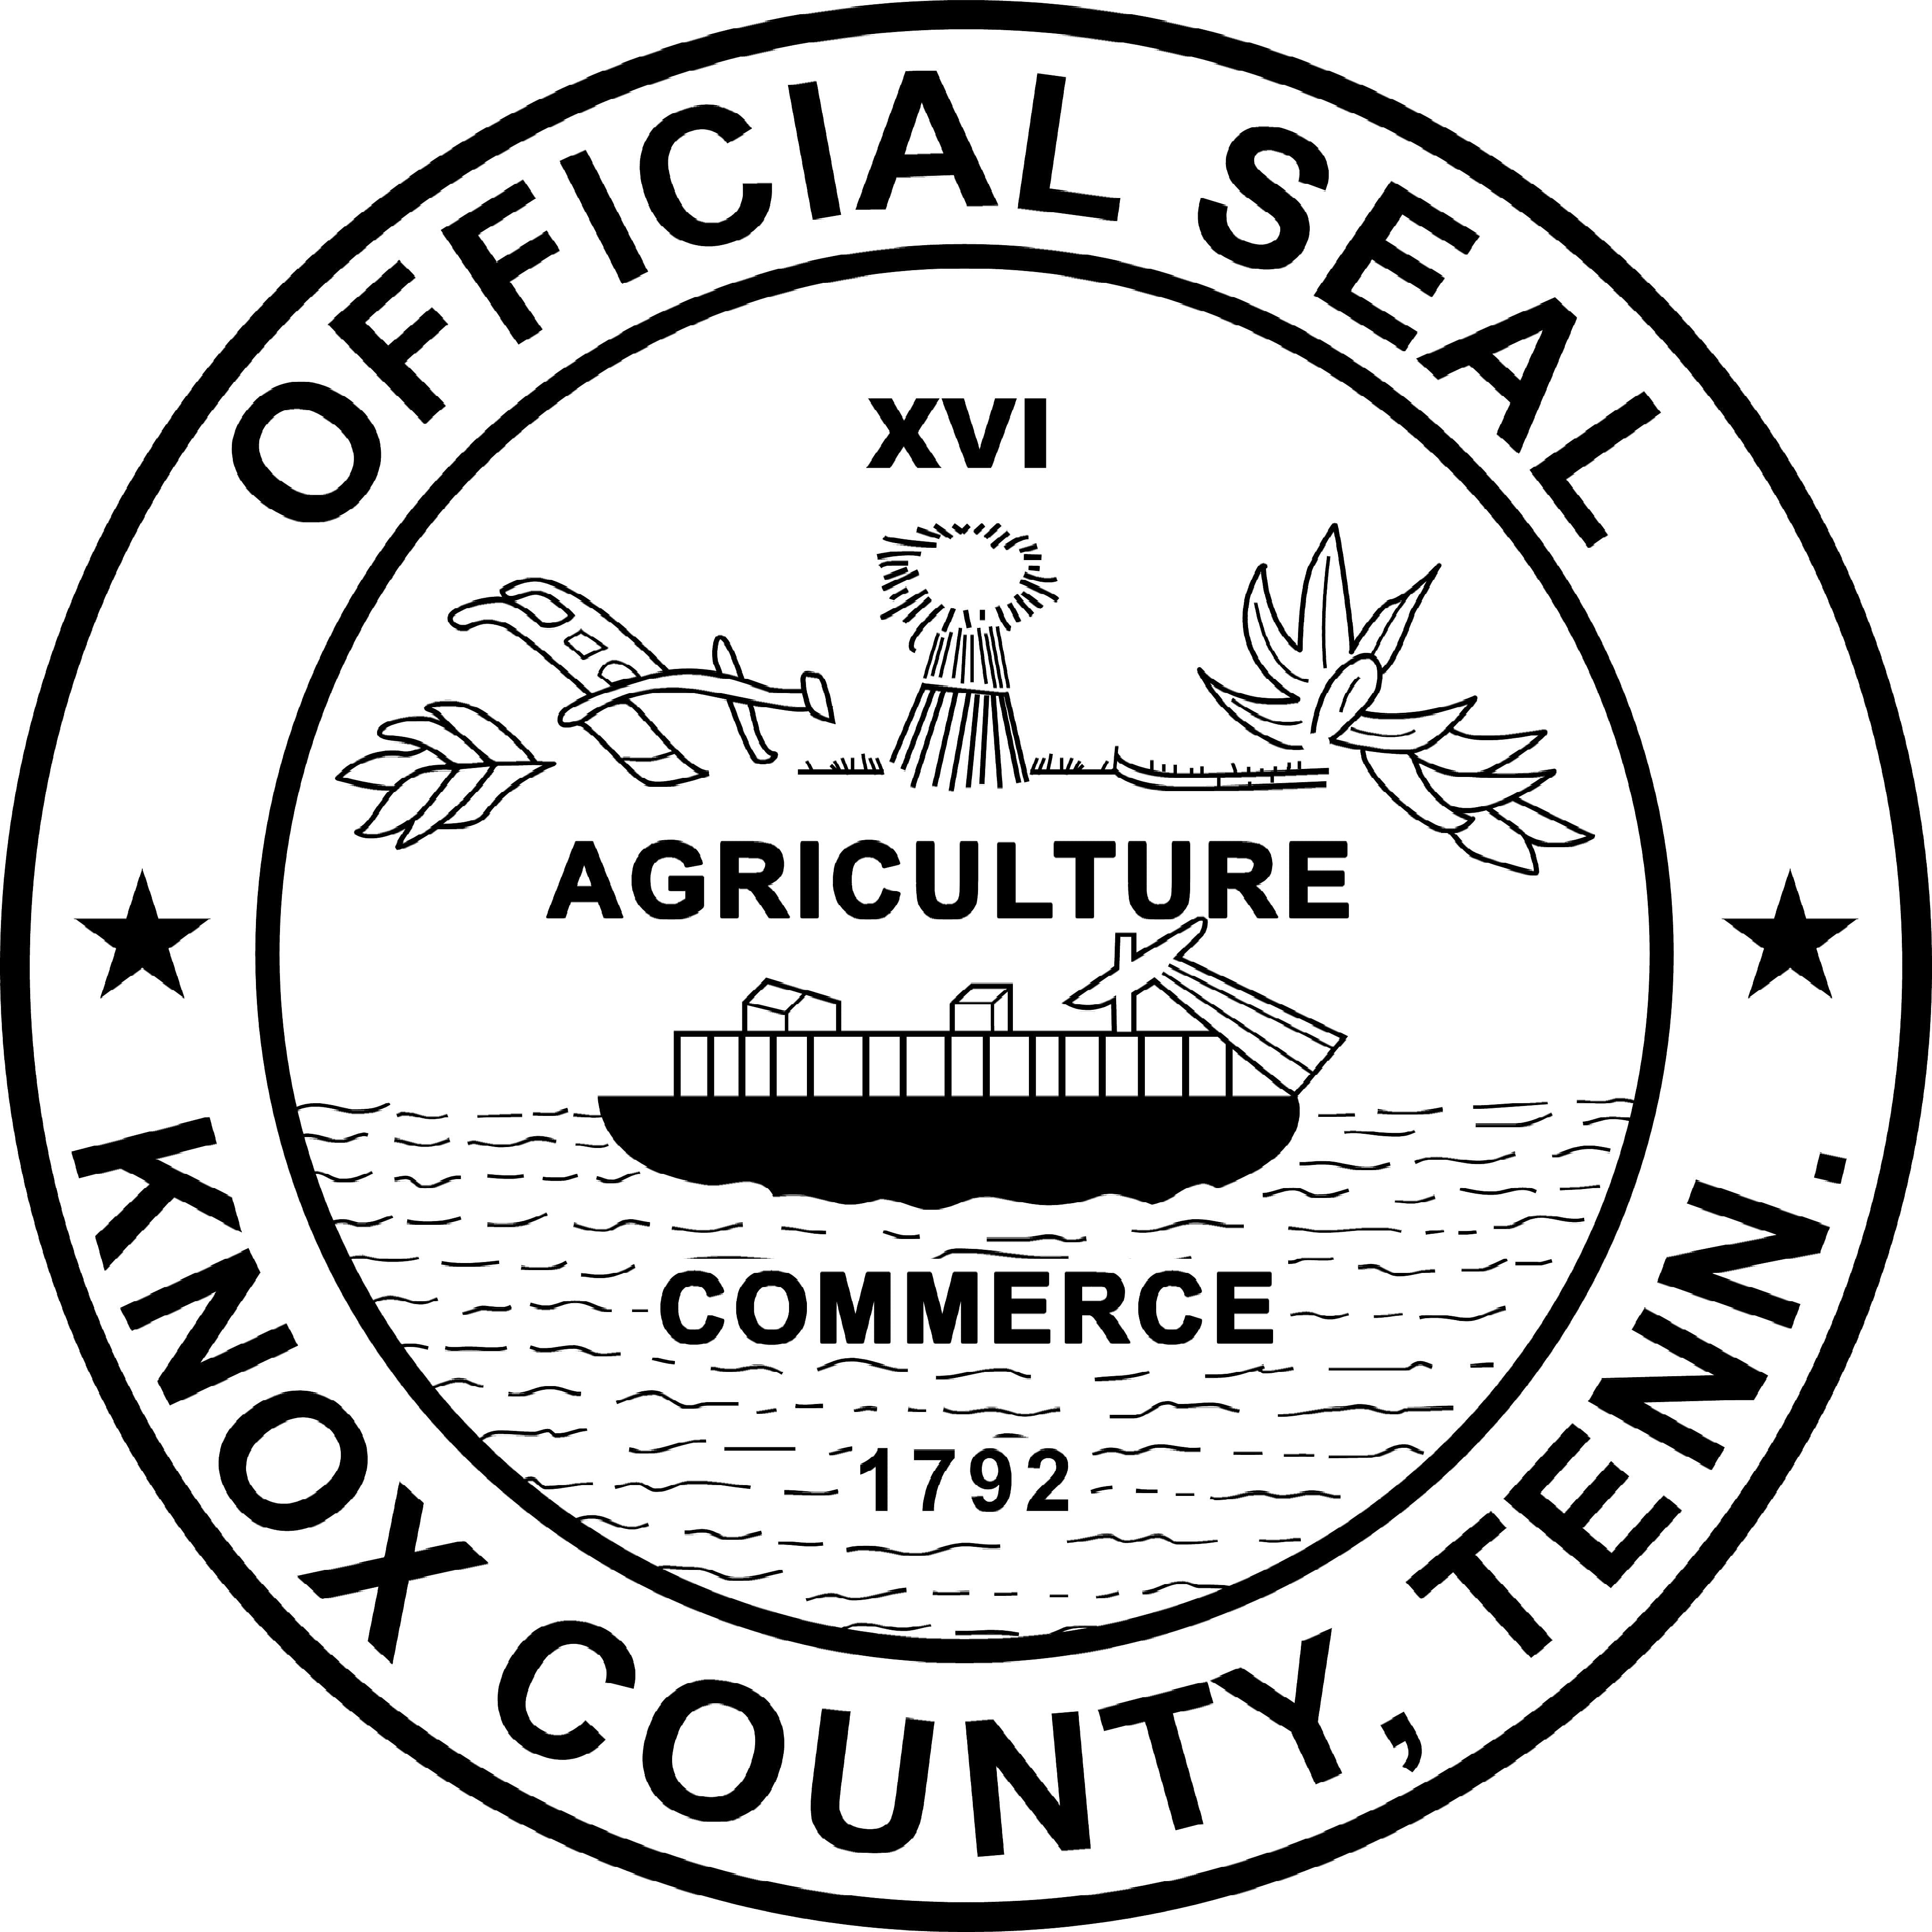 1 Resigned Another Dismissed Over Allegations of Wrongdoing in Knox Co Govt